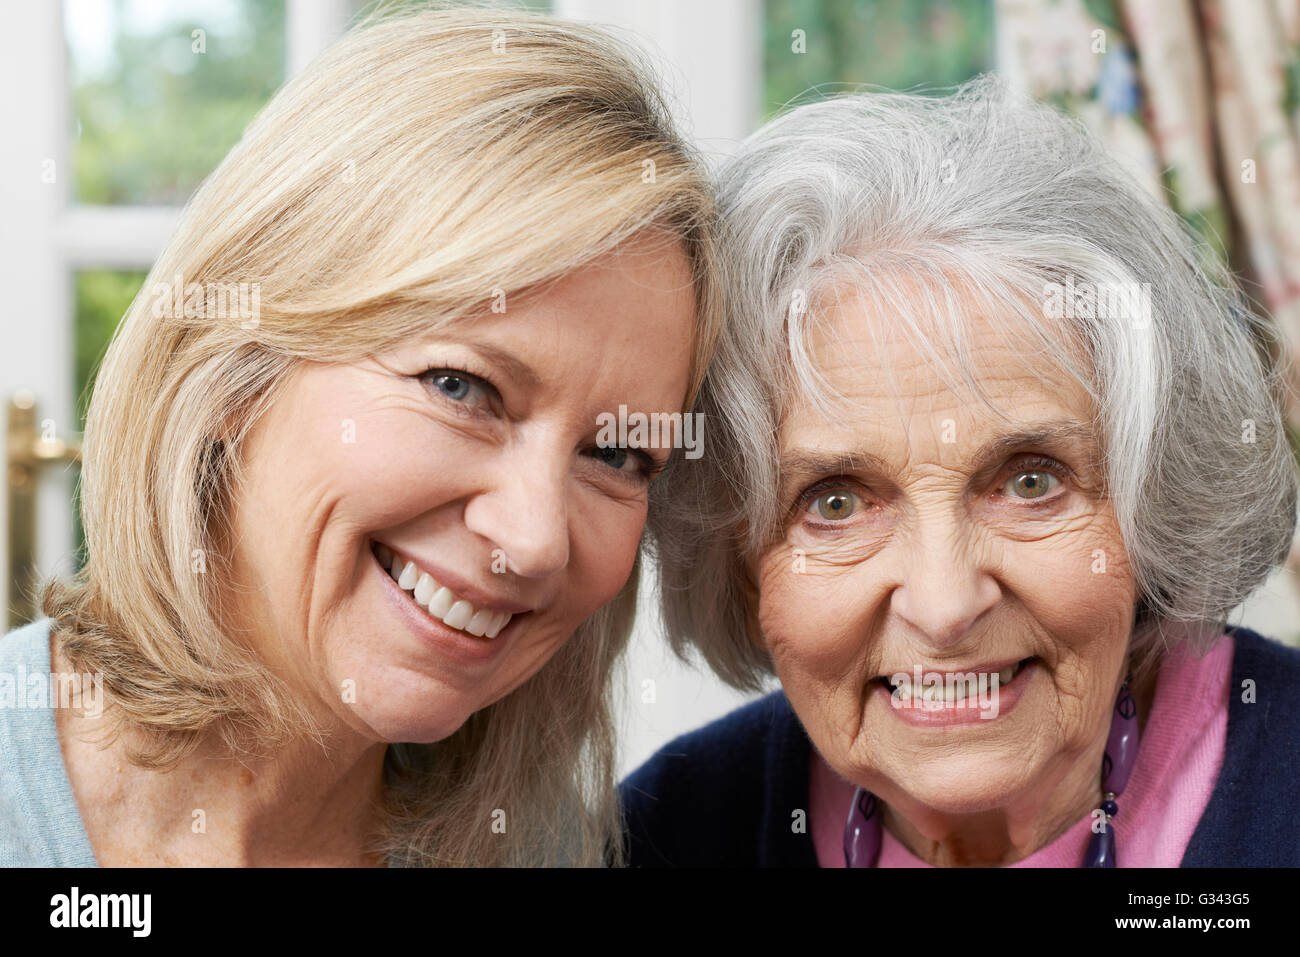 Portrait Of Senior Mother And Adult Daughter - Stock Image